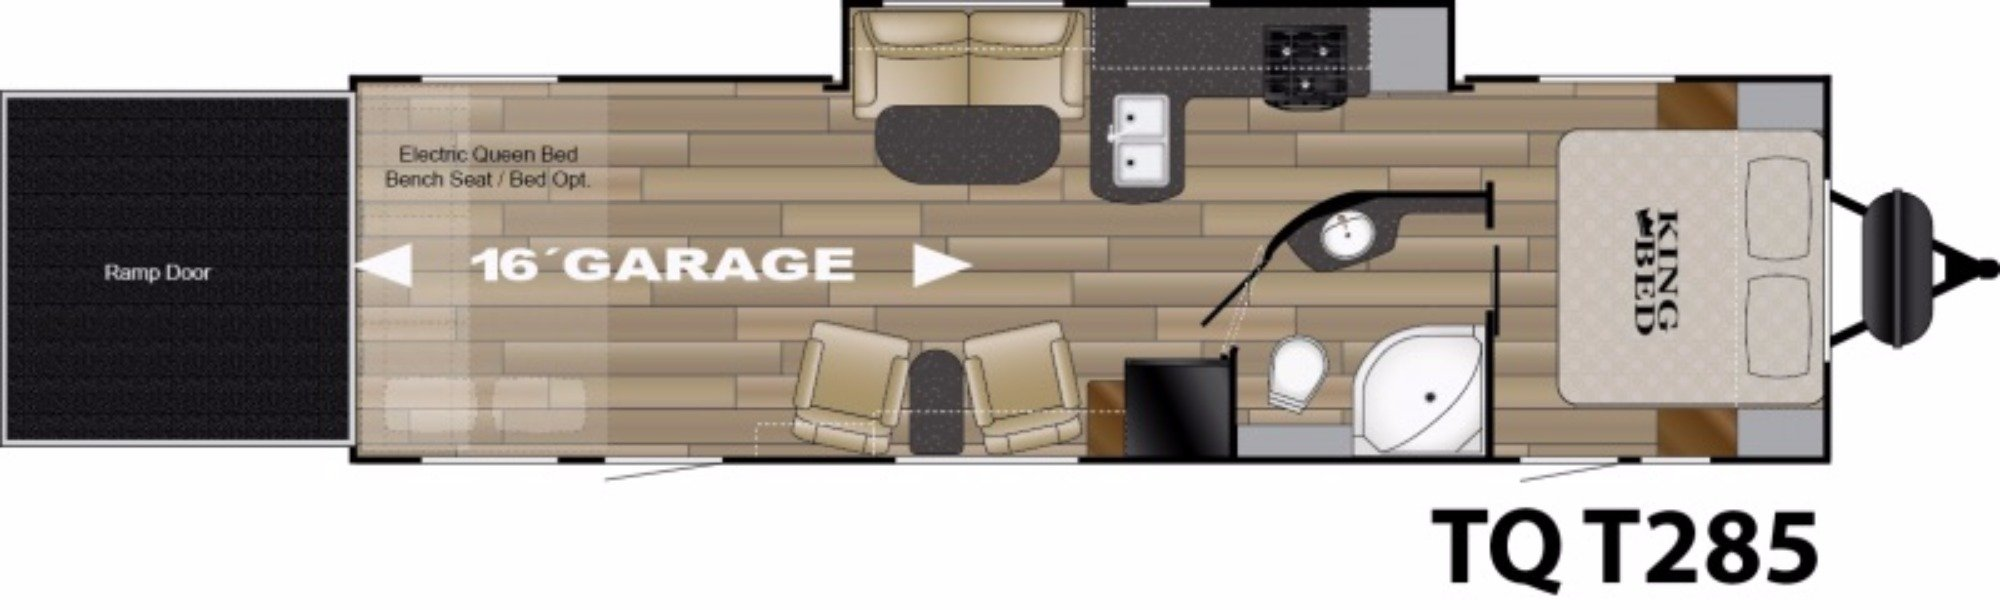 View Floor Plan for 2017 HEARTLAND TORQUE T285